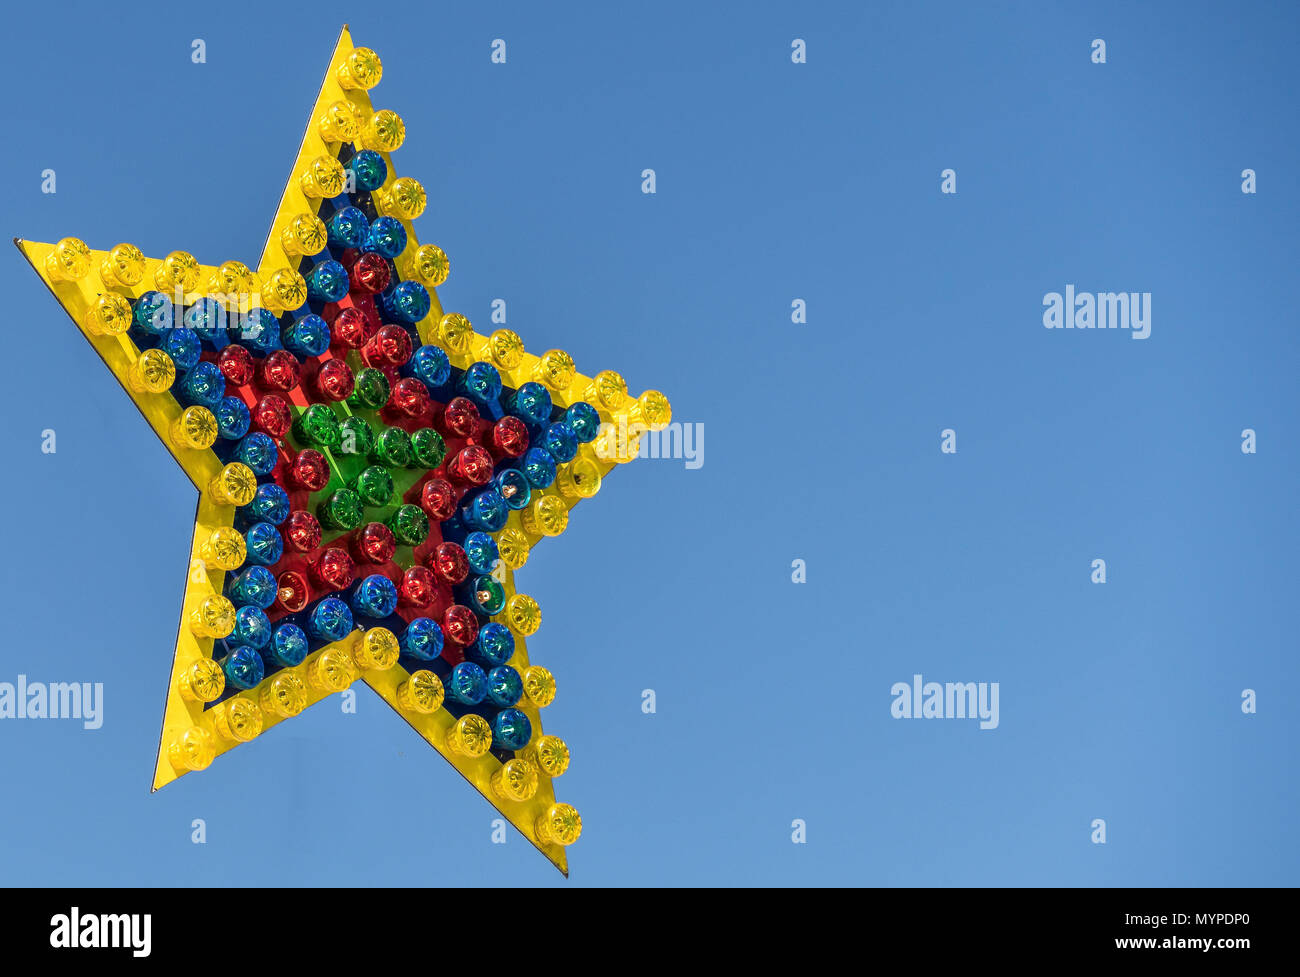 Colorful shining star from many single lamps with different colors on a fair, exempted before a blue sky, isolated - Stock Image